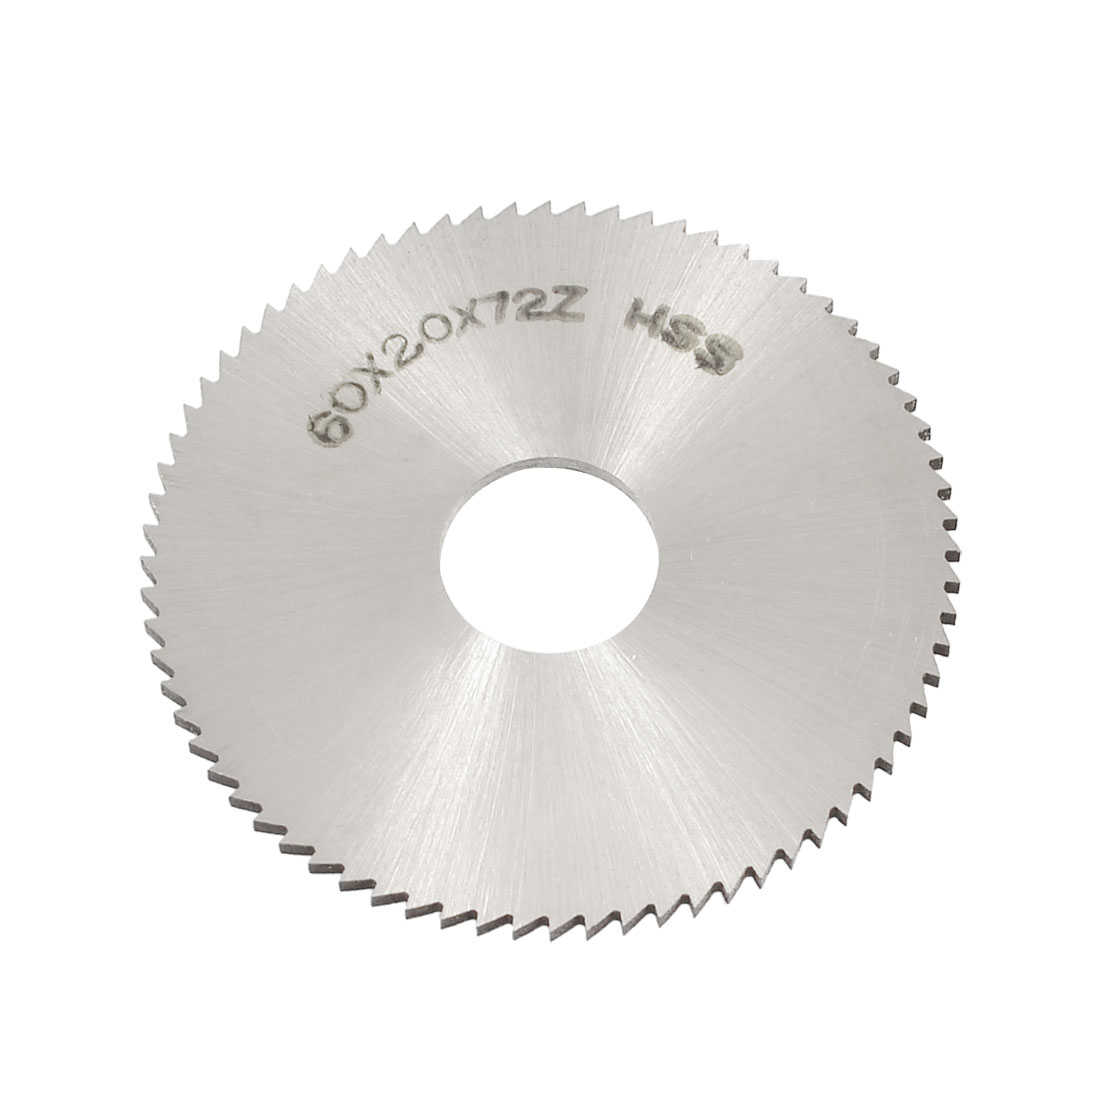 Unique Bargains Silver Tone HSS 60mm x 2mm x 16mm 72T Slitting Saw